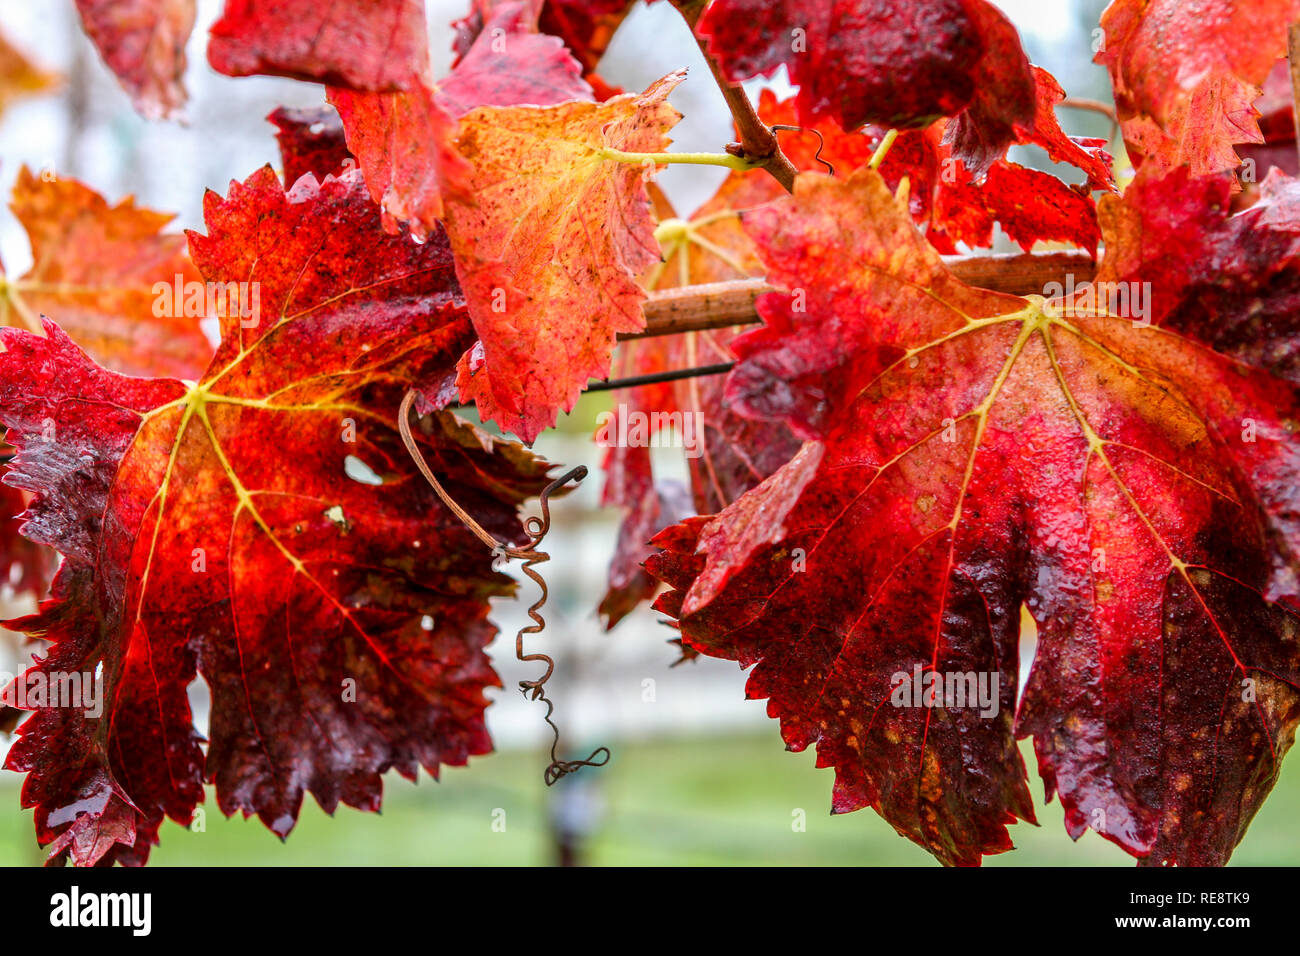 Fire Leaves - Autumn in wine country brings out grape leaves seemingly on fire. Russian River Valley, California, USA - Stock Image